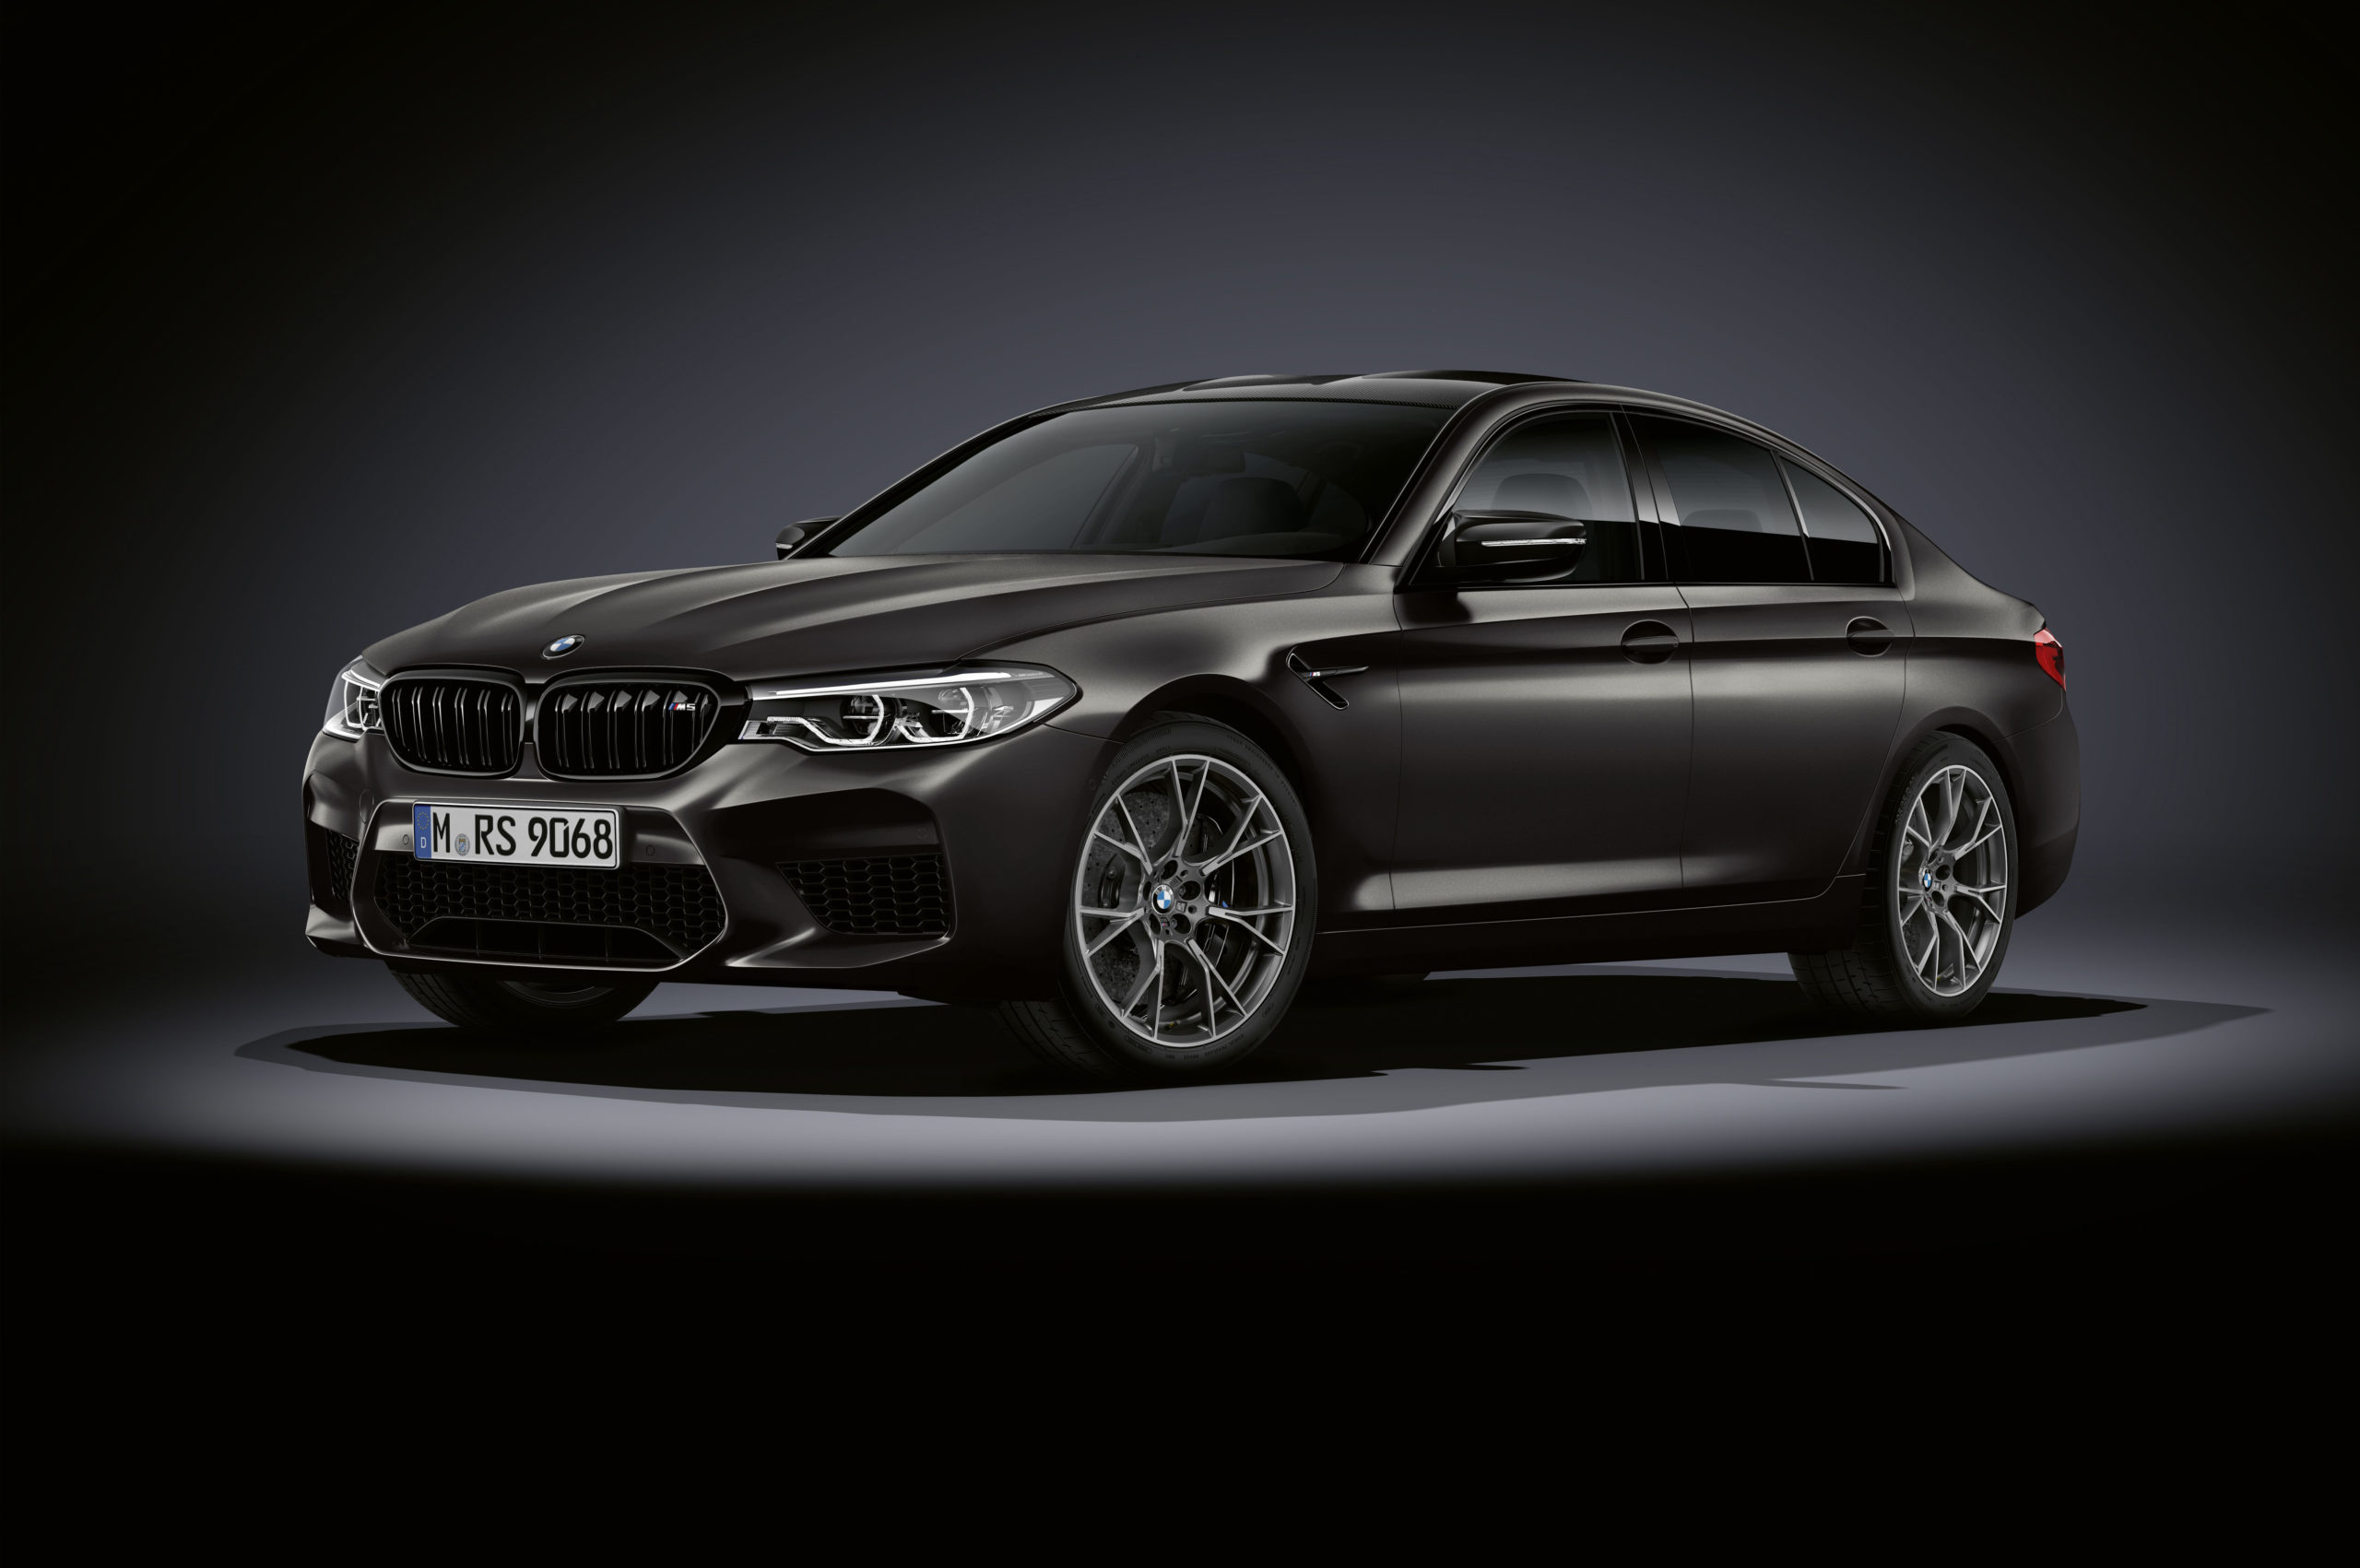 2020 BMW M5 Review, Pricing, and Specs